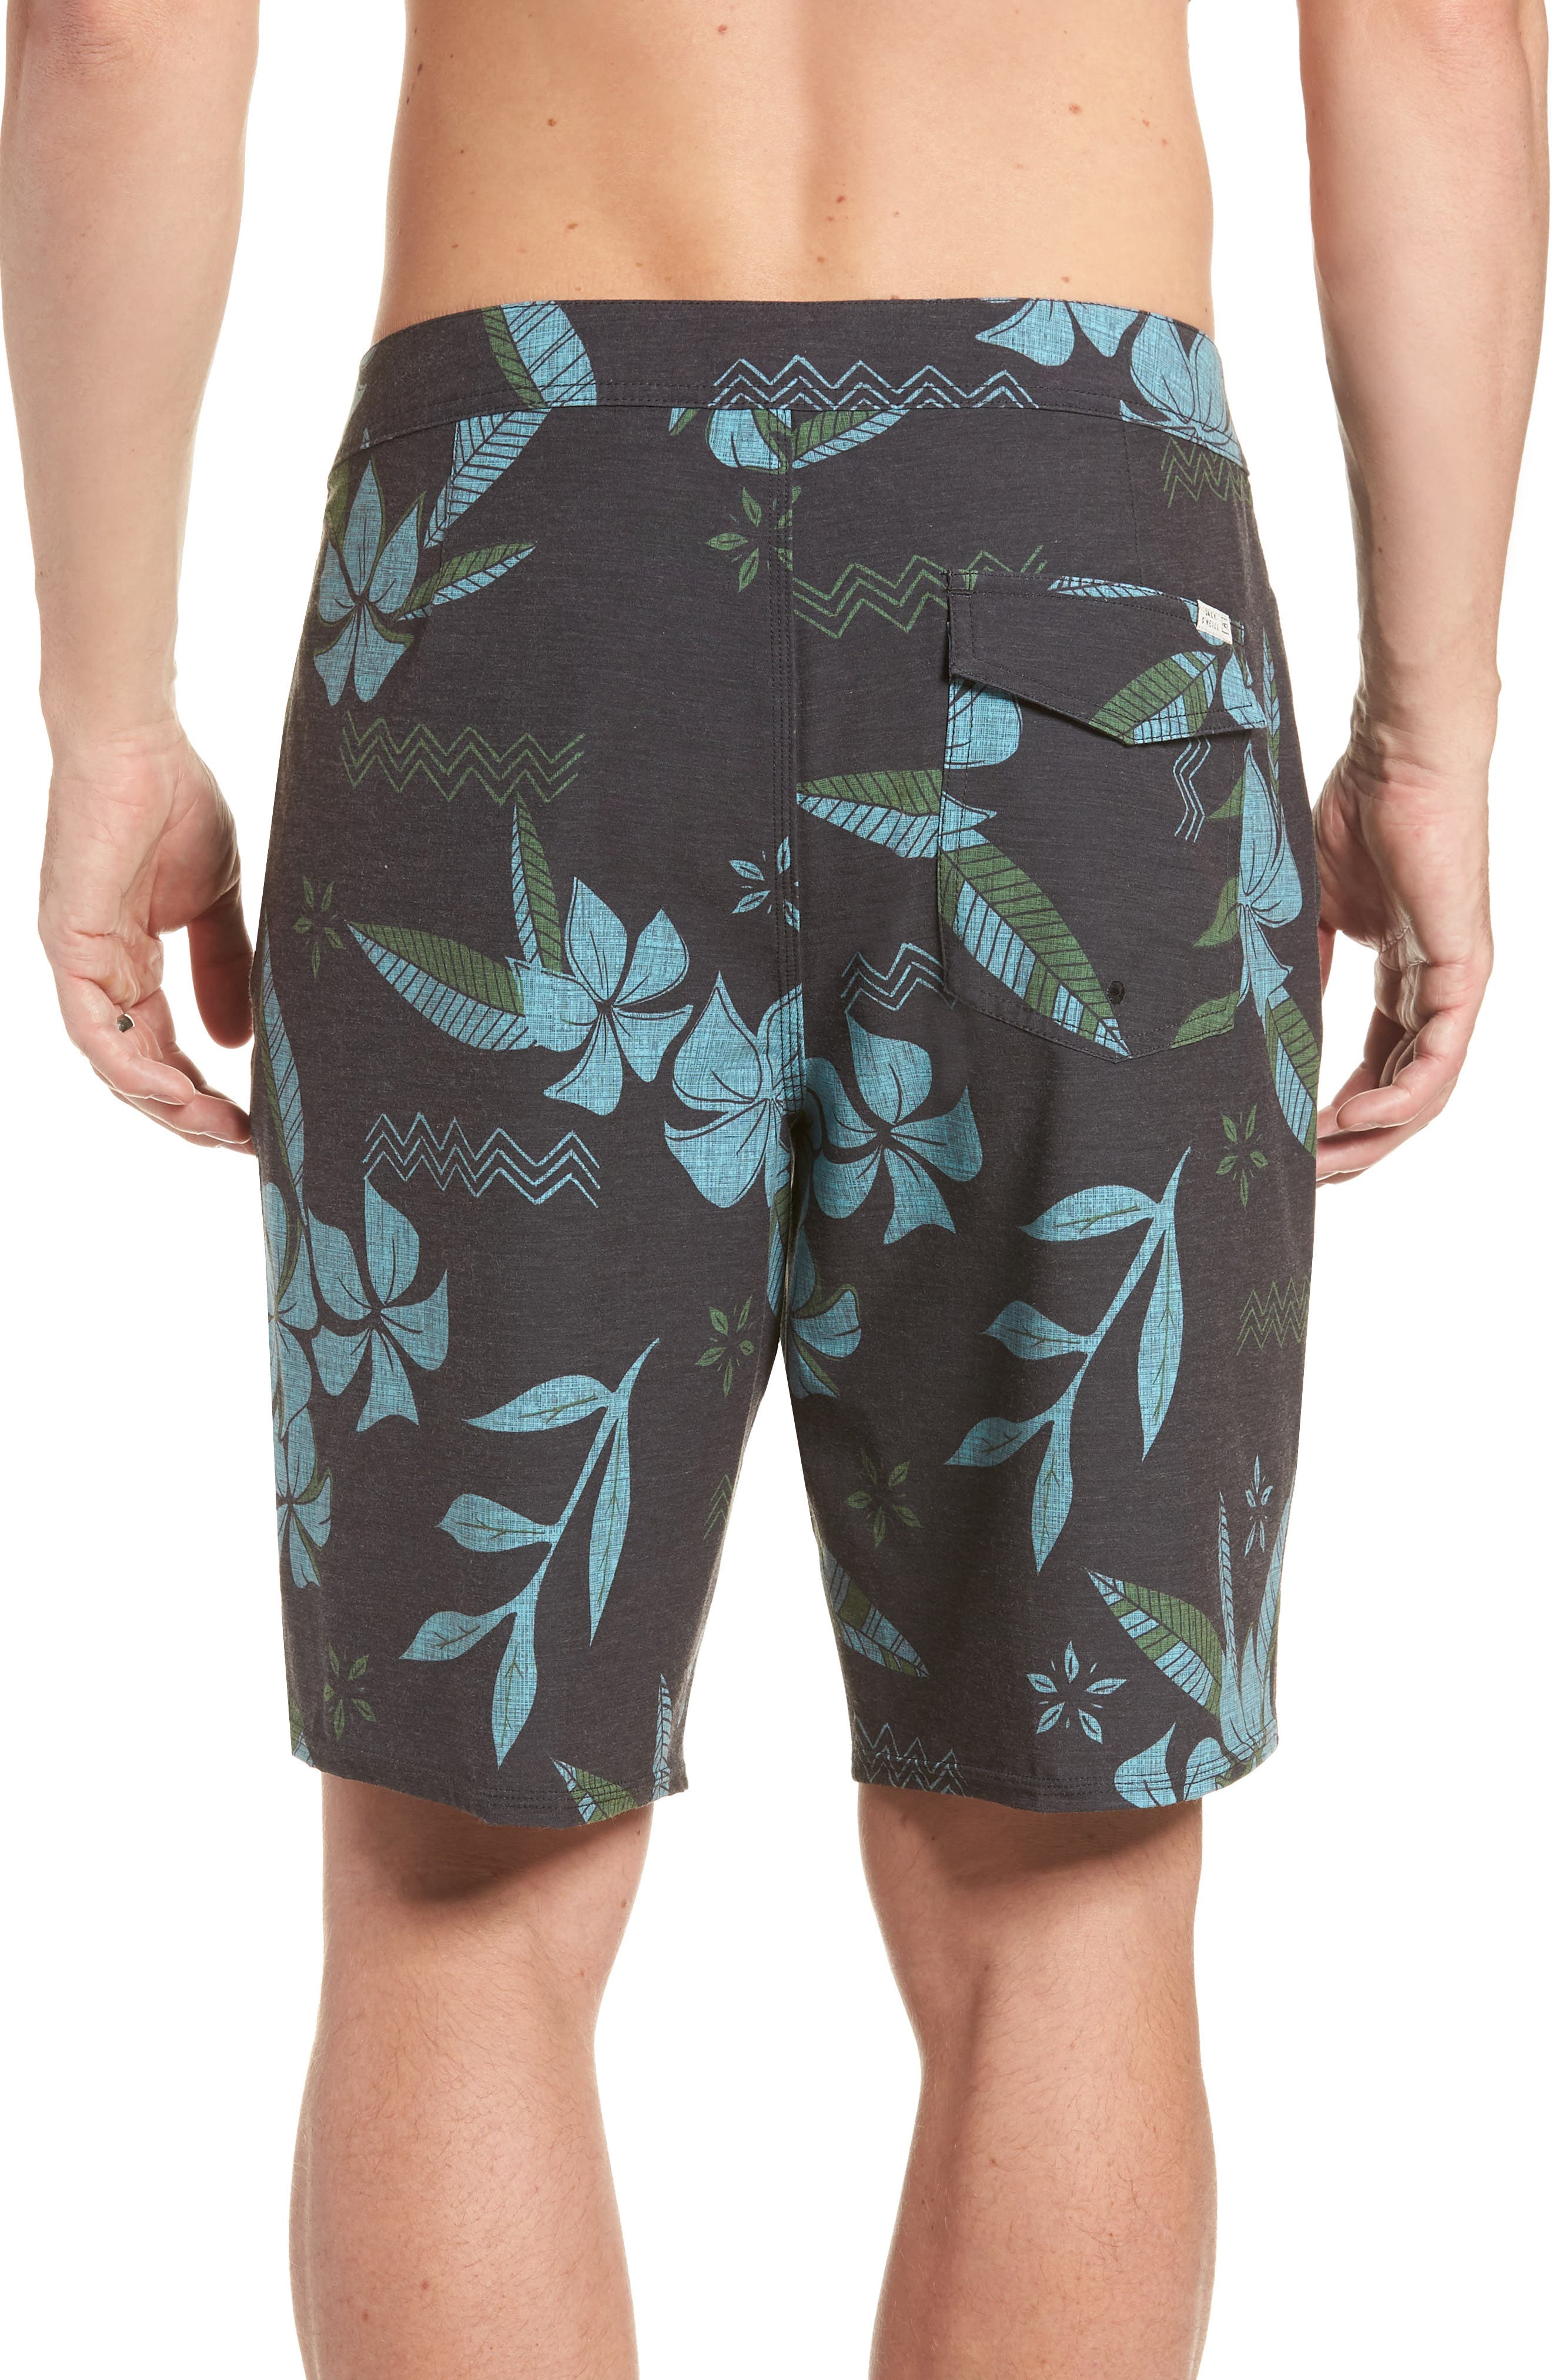 Maui Board Shorts,                             Alternate thumbnail 4, color,